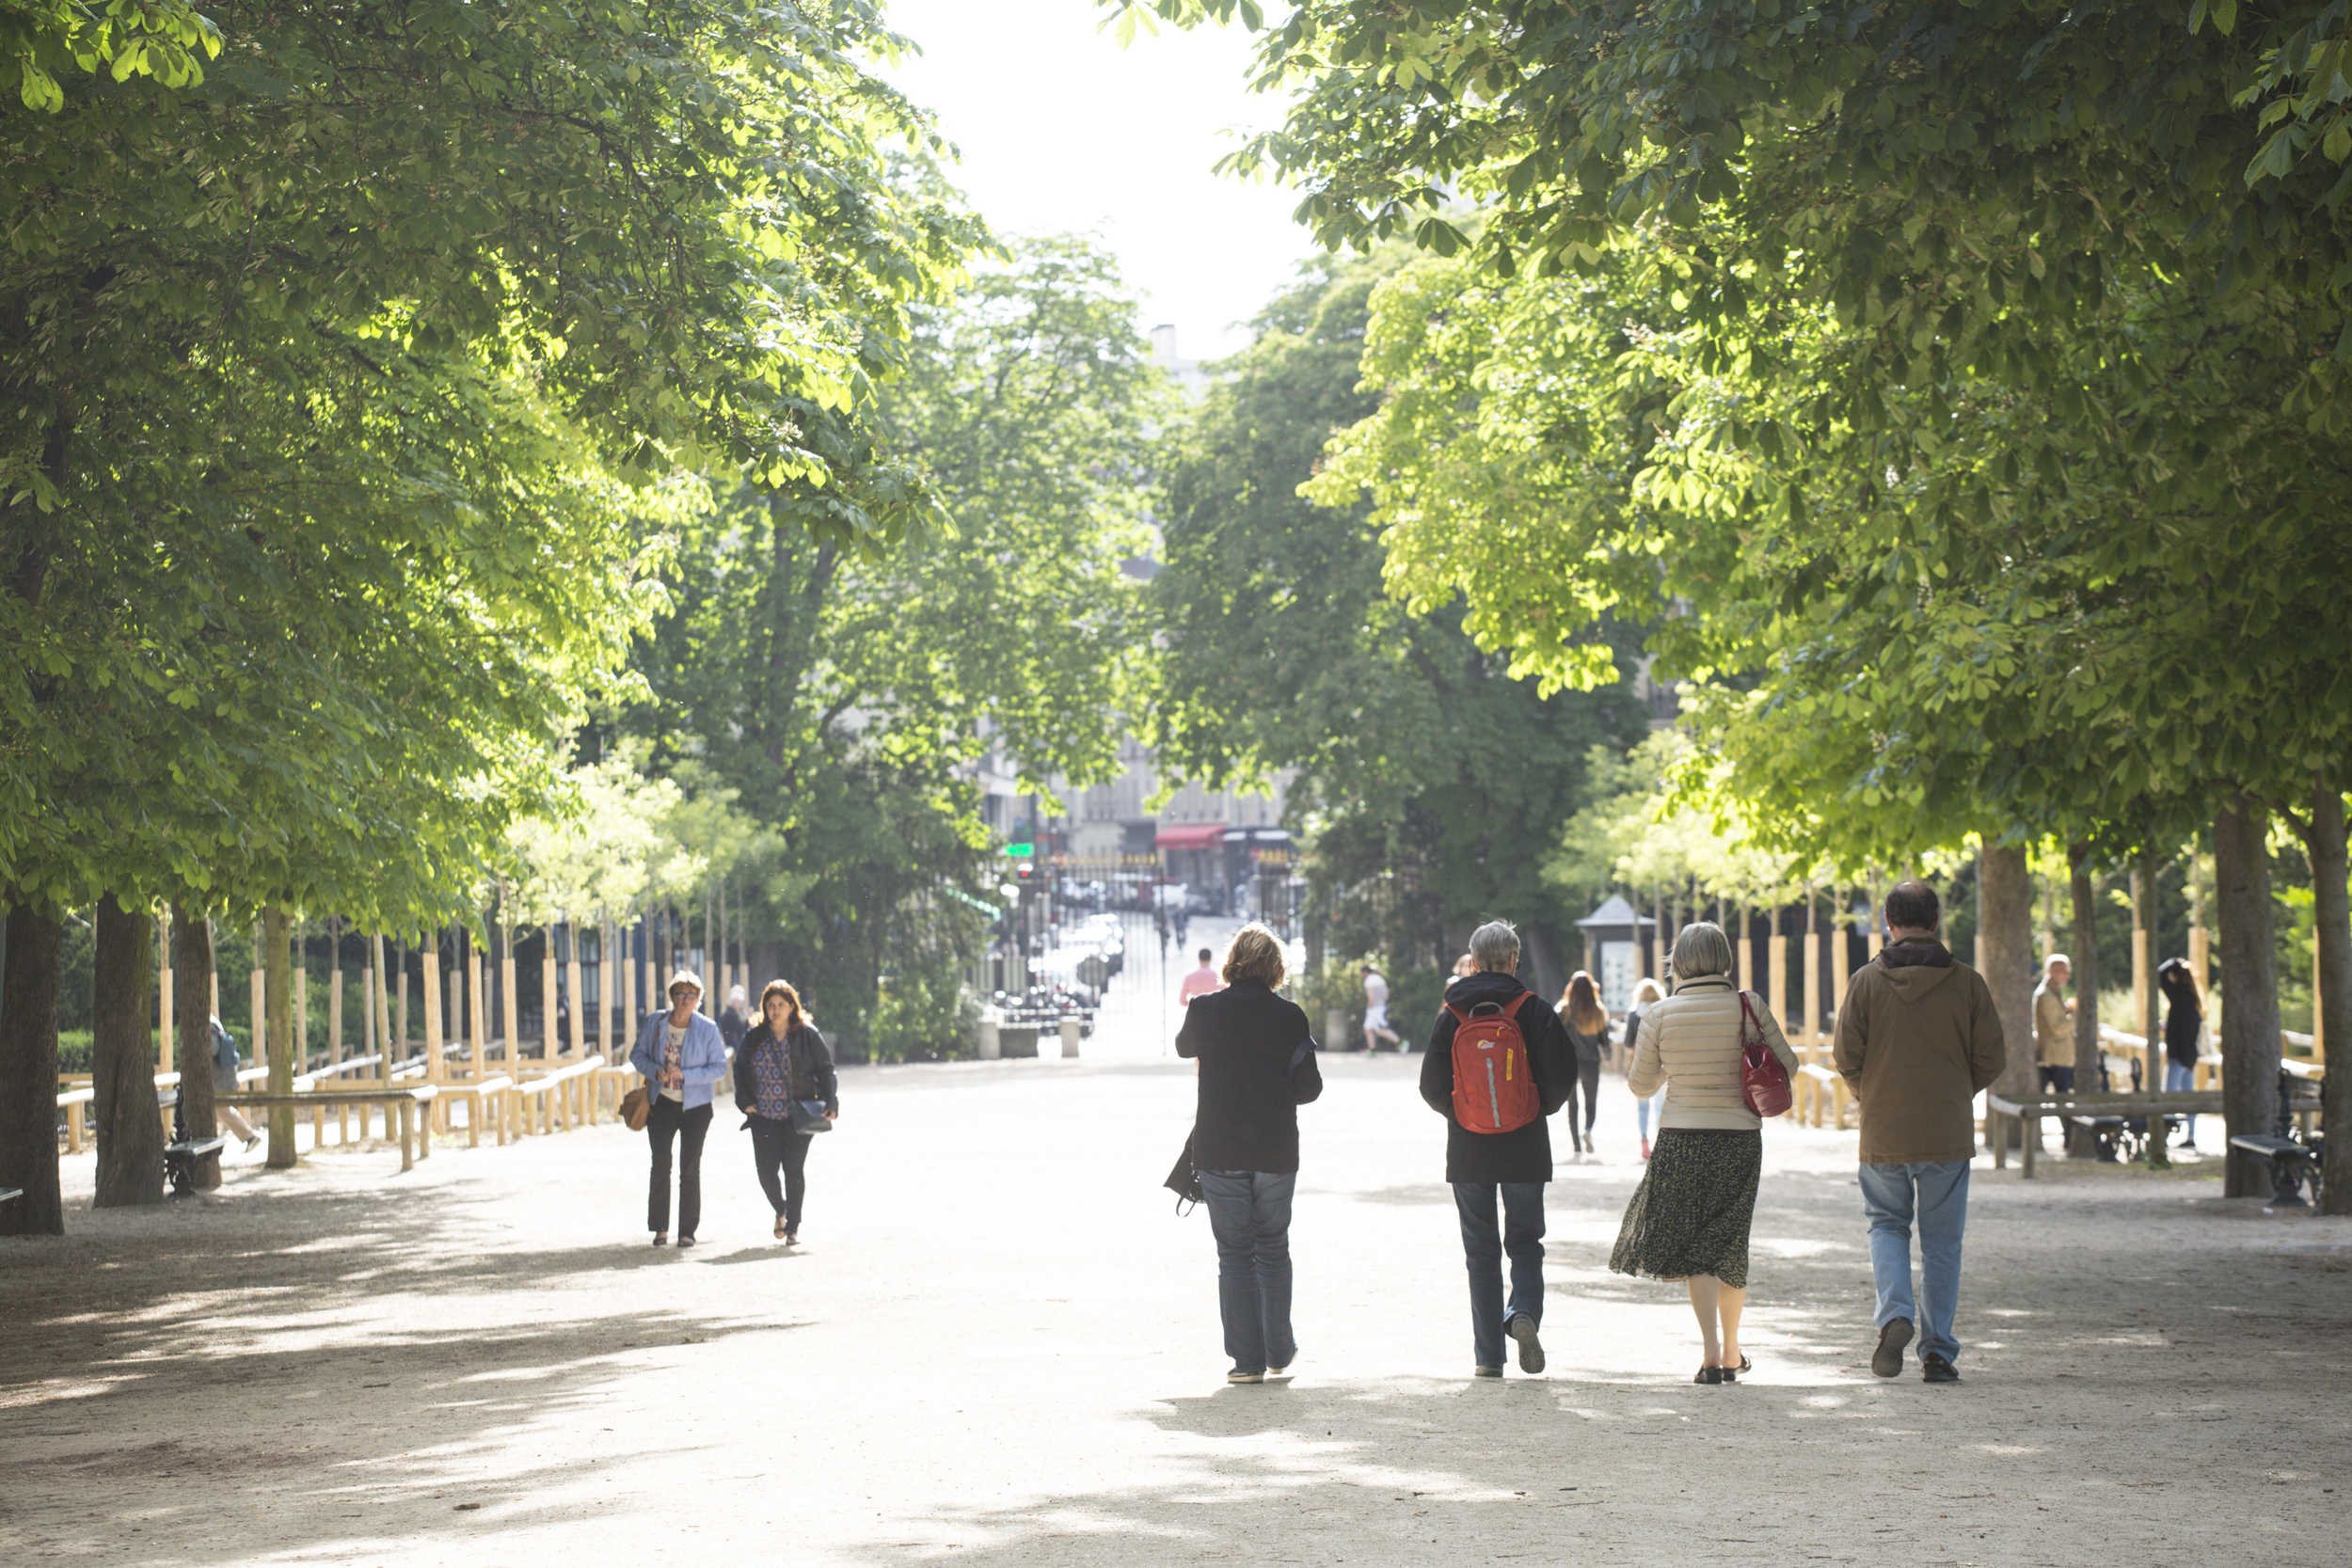 leaving Luxembourg gardens